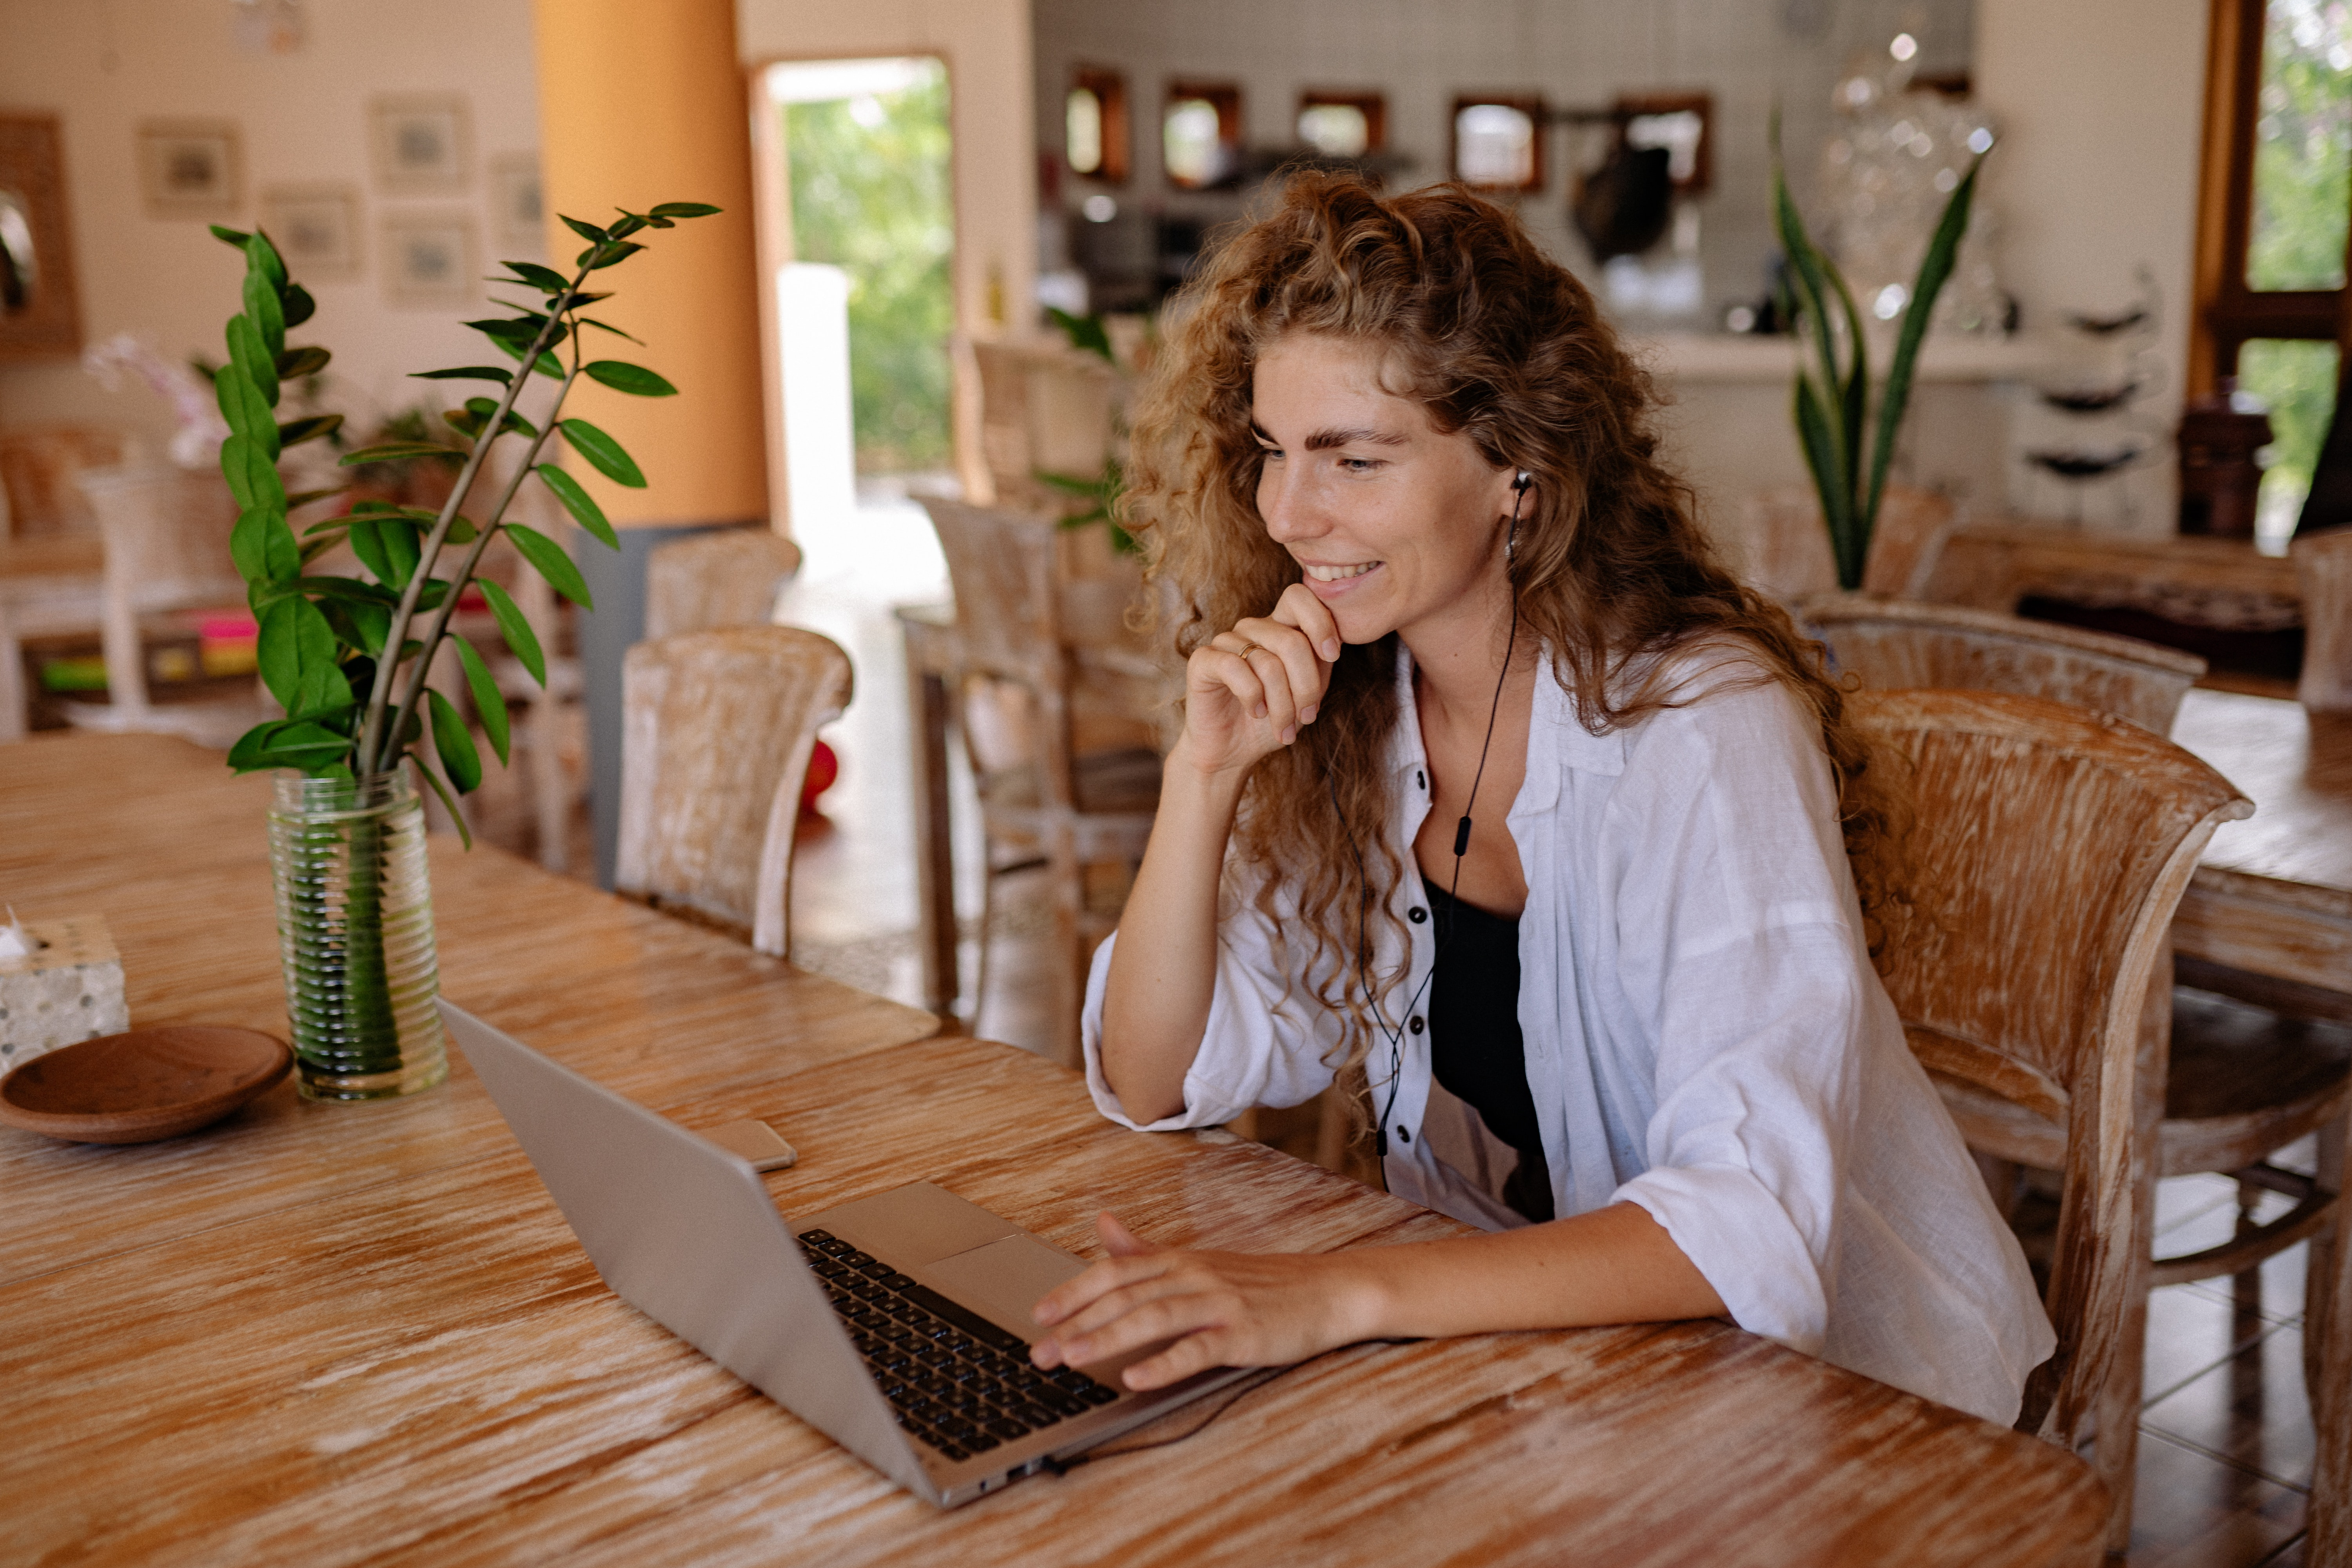 Woman smiling at laptop in an organic style home